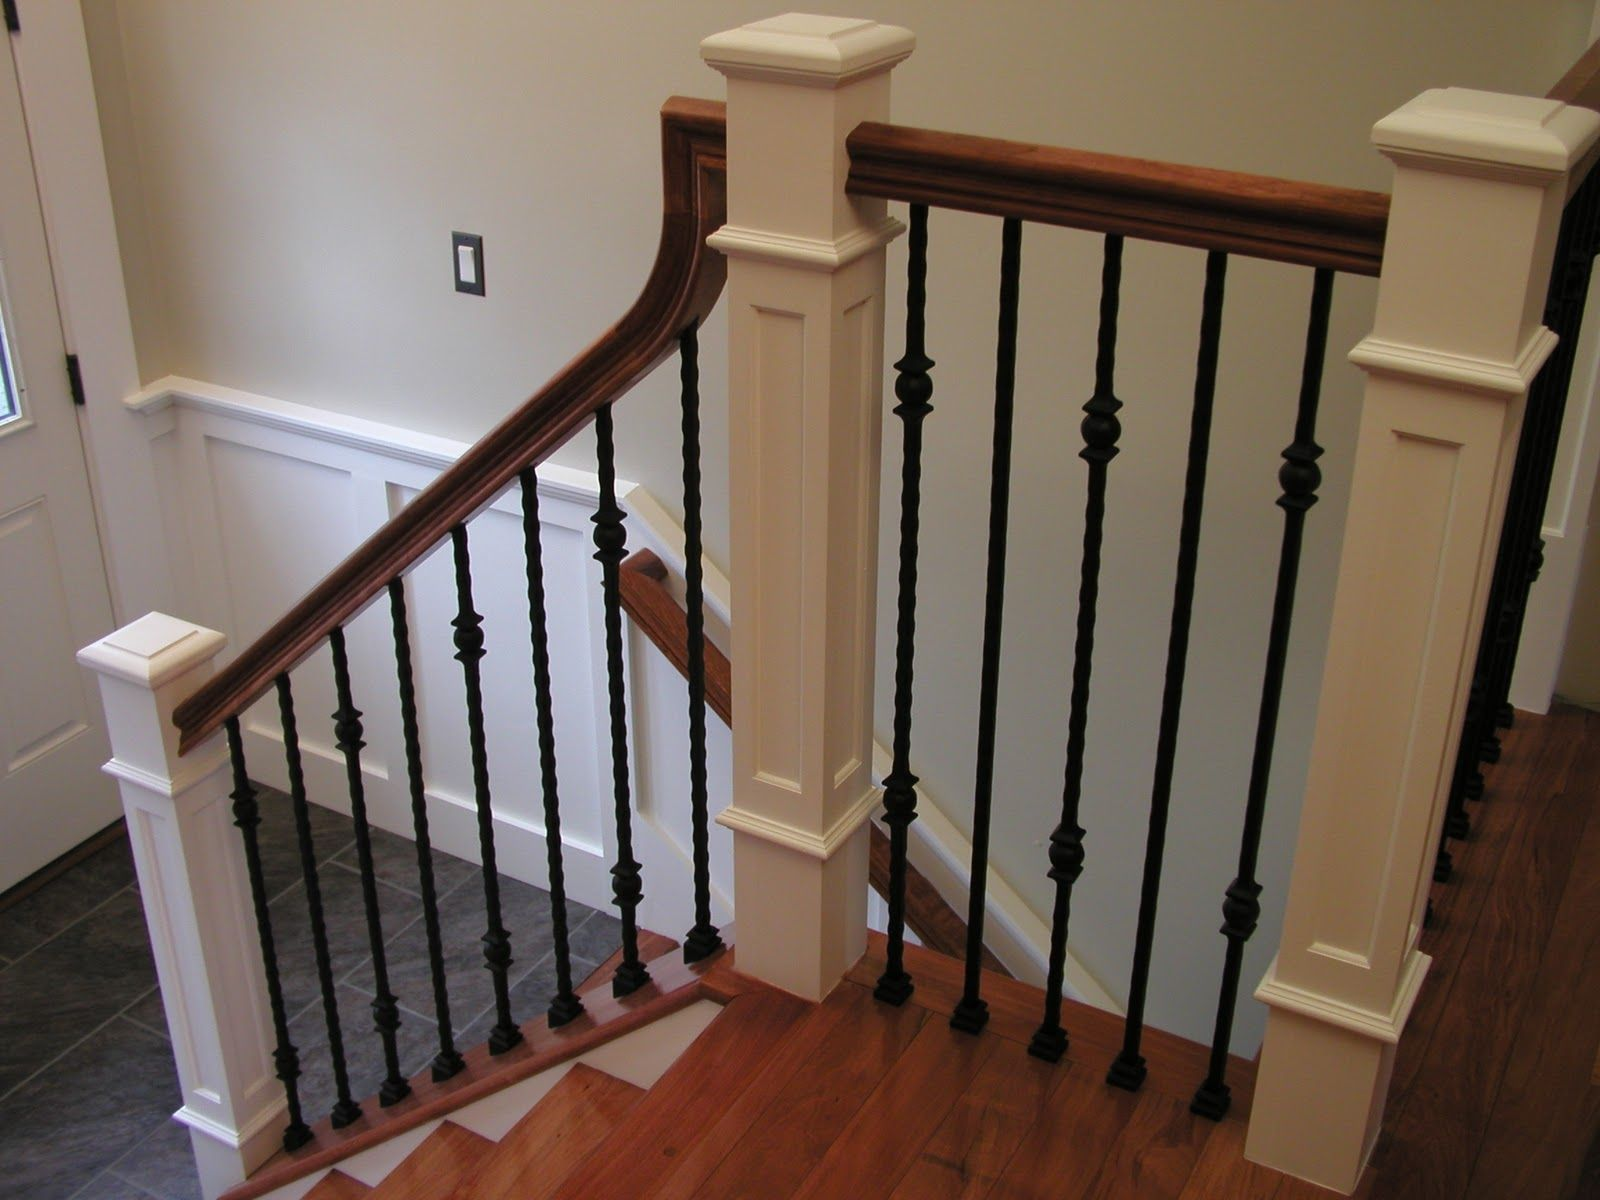 Stair Balusters 9 Lomonacou0027s Iron Concepts U0026 Home Decor: New Railing And  Wainscoting In